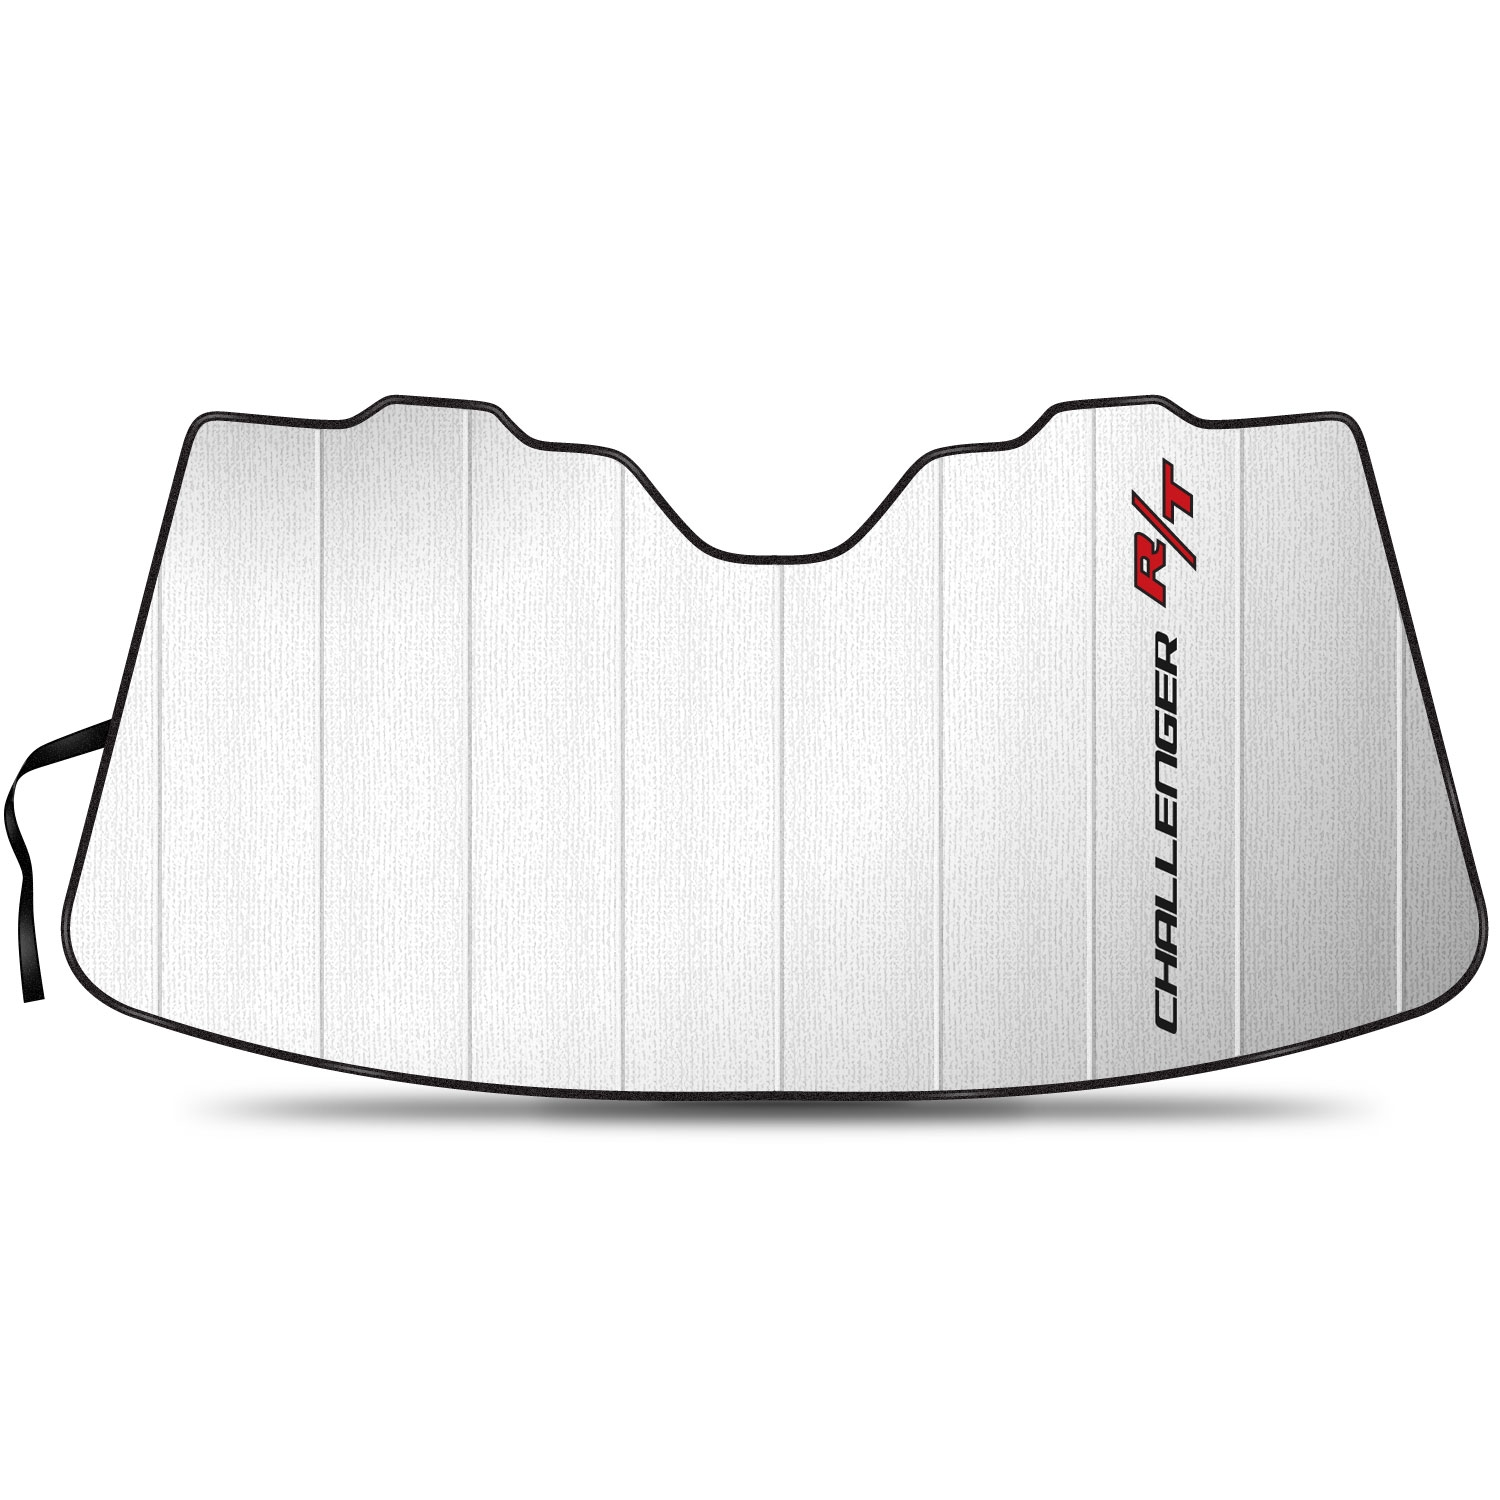 """Dodge Challenger R/T Logo 55-1/2""""x 27"""" Stand Up Universal Fit Auto Windshield Sun Shade"""